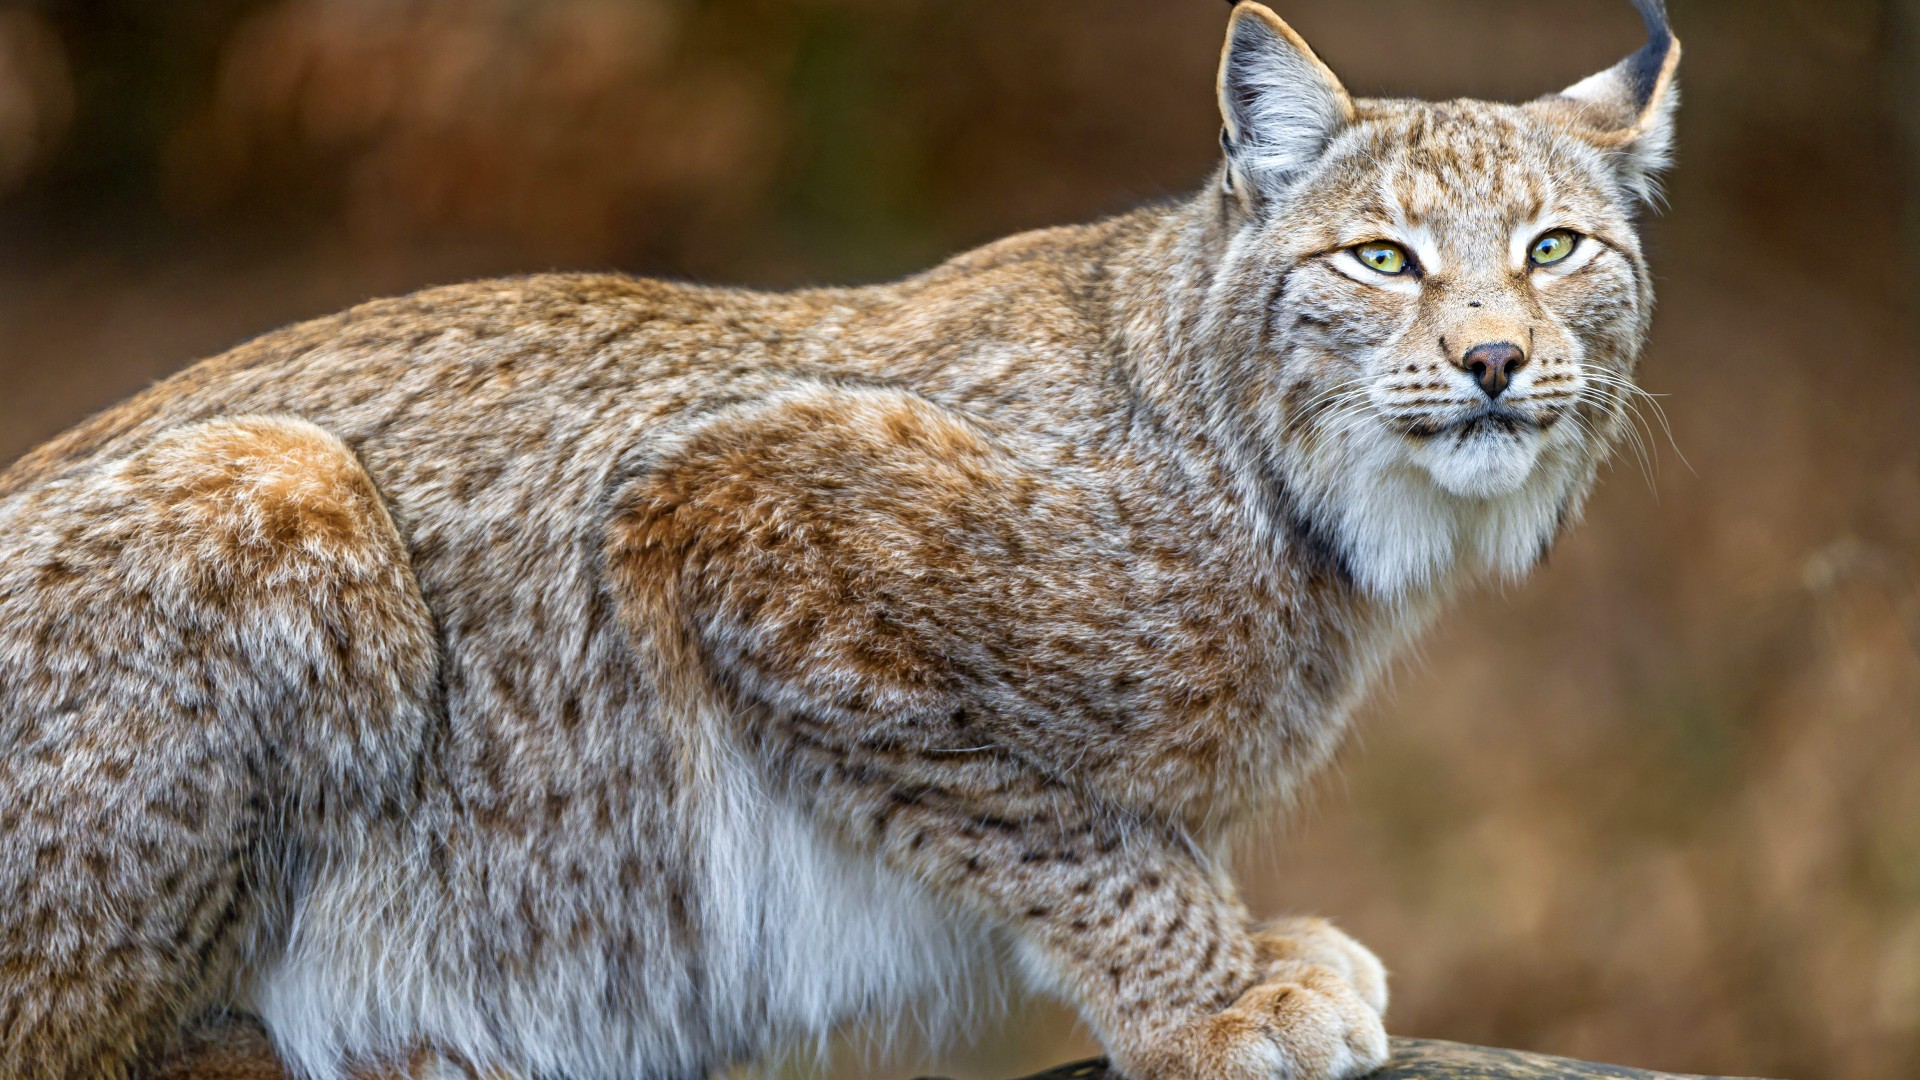 Cute Cats Wallpaper With Quotes Wallpaper Lynx World S Dangerous Animals Predator